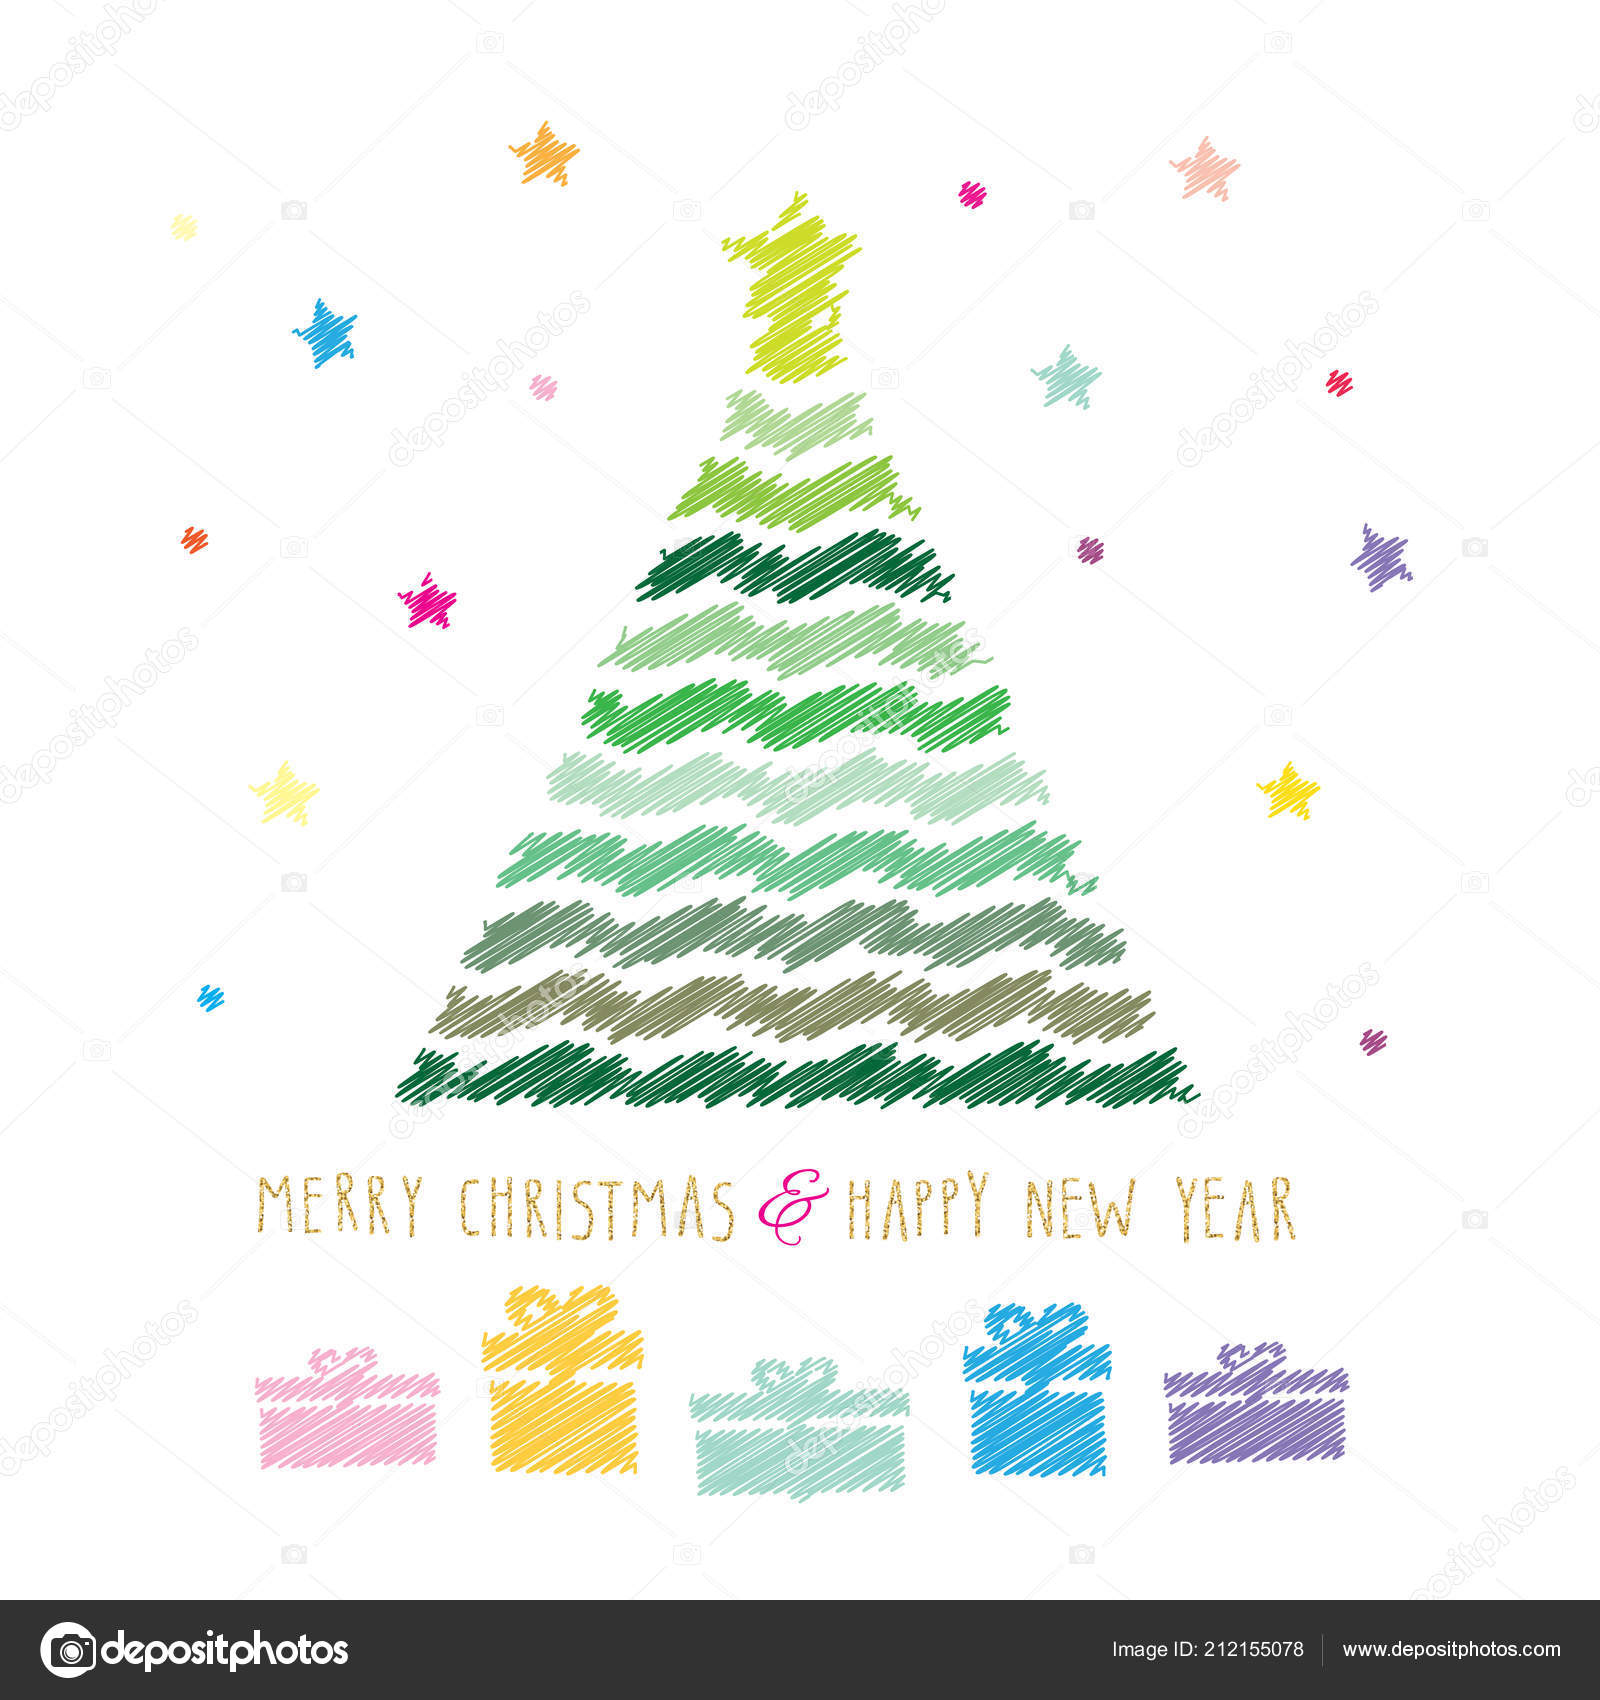 merry christmas and happy new year card colour pencils drawing sketch design